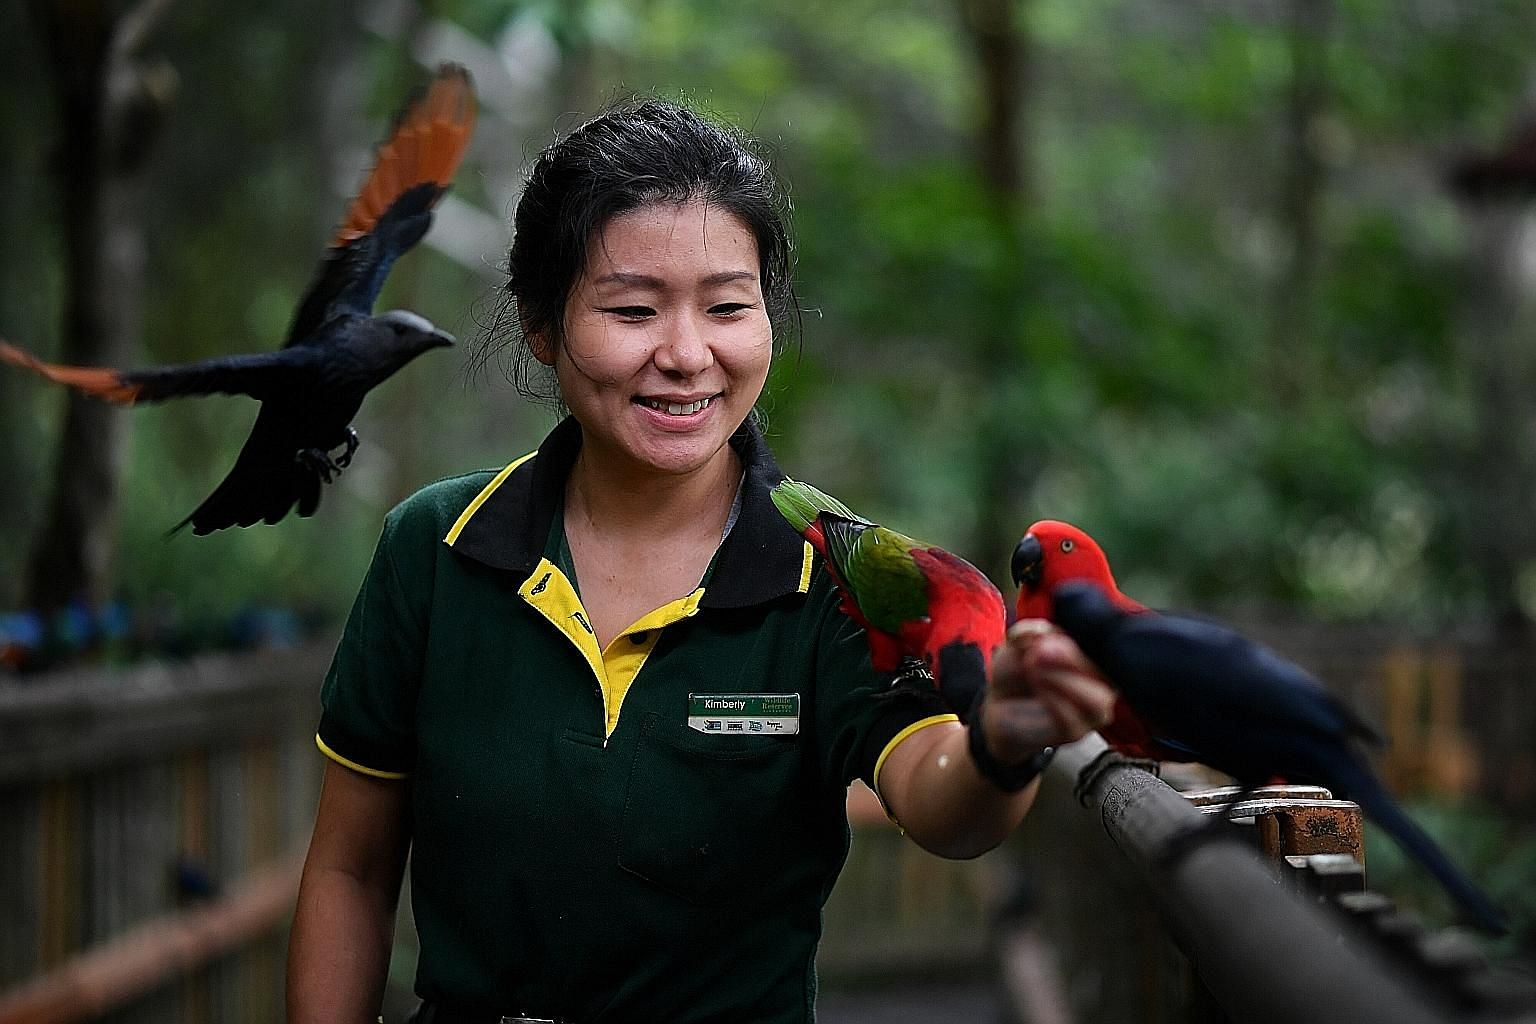 Jurong Bird Park junior birdkeeper Kimberly Wee, who picked up skills needed for her work through on-the-job training and courses, is looking forward to progressing to the next stage of her job under a new competency framework in zoology launched by